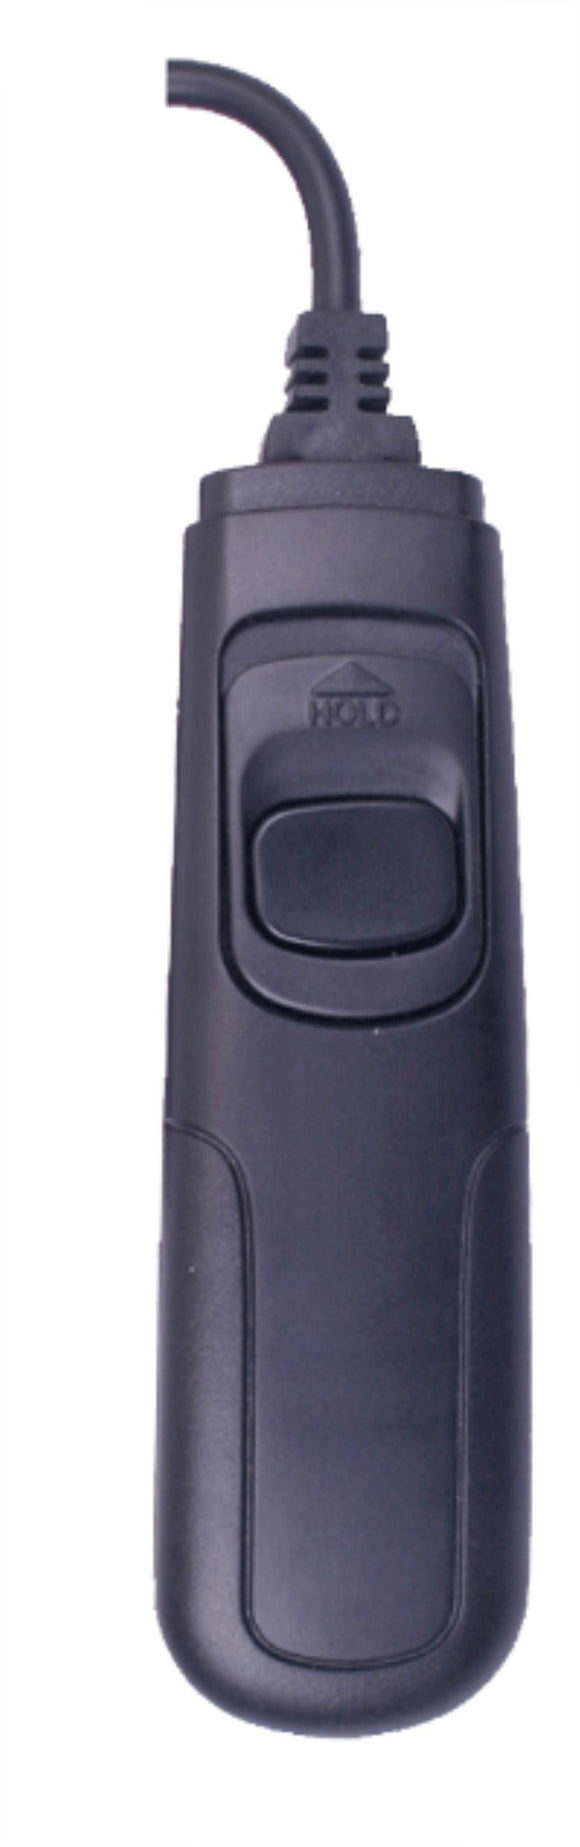 Zumm Photo Wired Shutter Release for Canon EOS 3 Pin